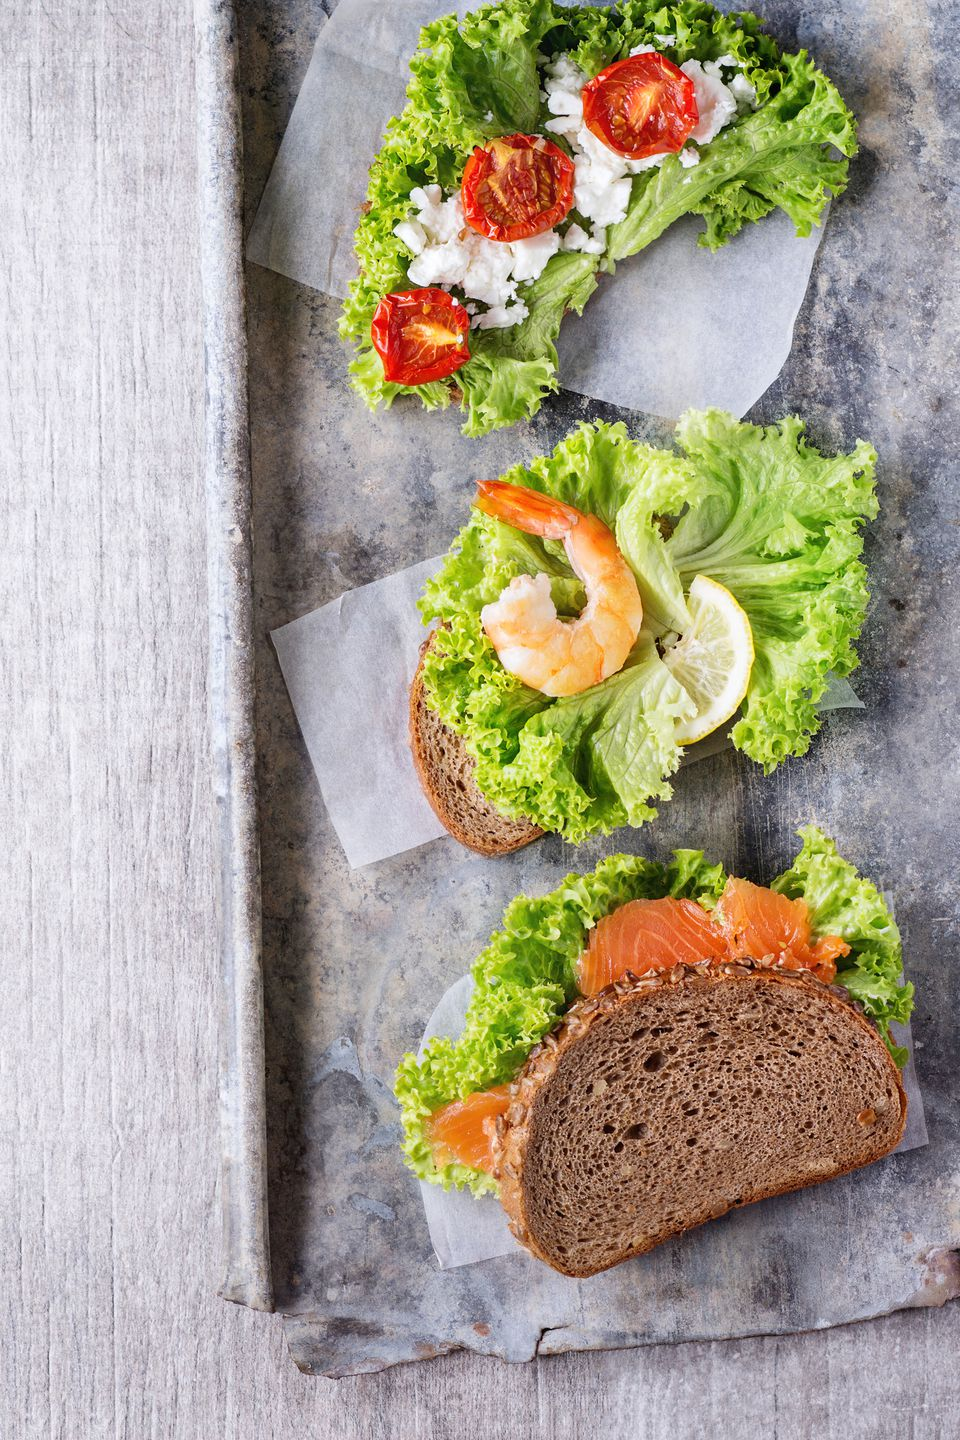 Sandwich with seafood